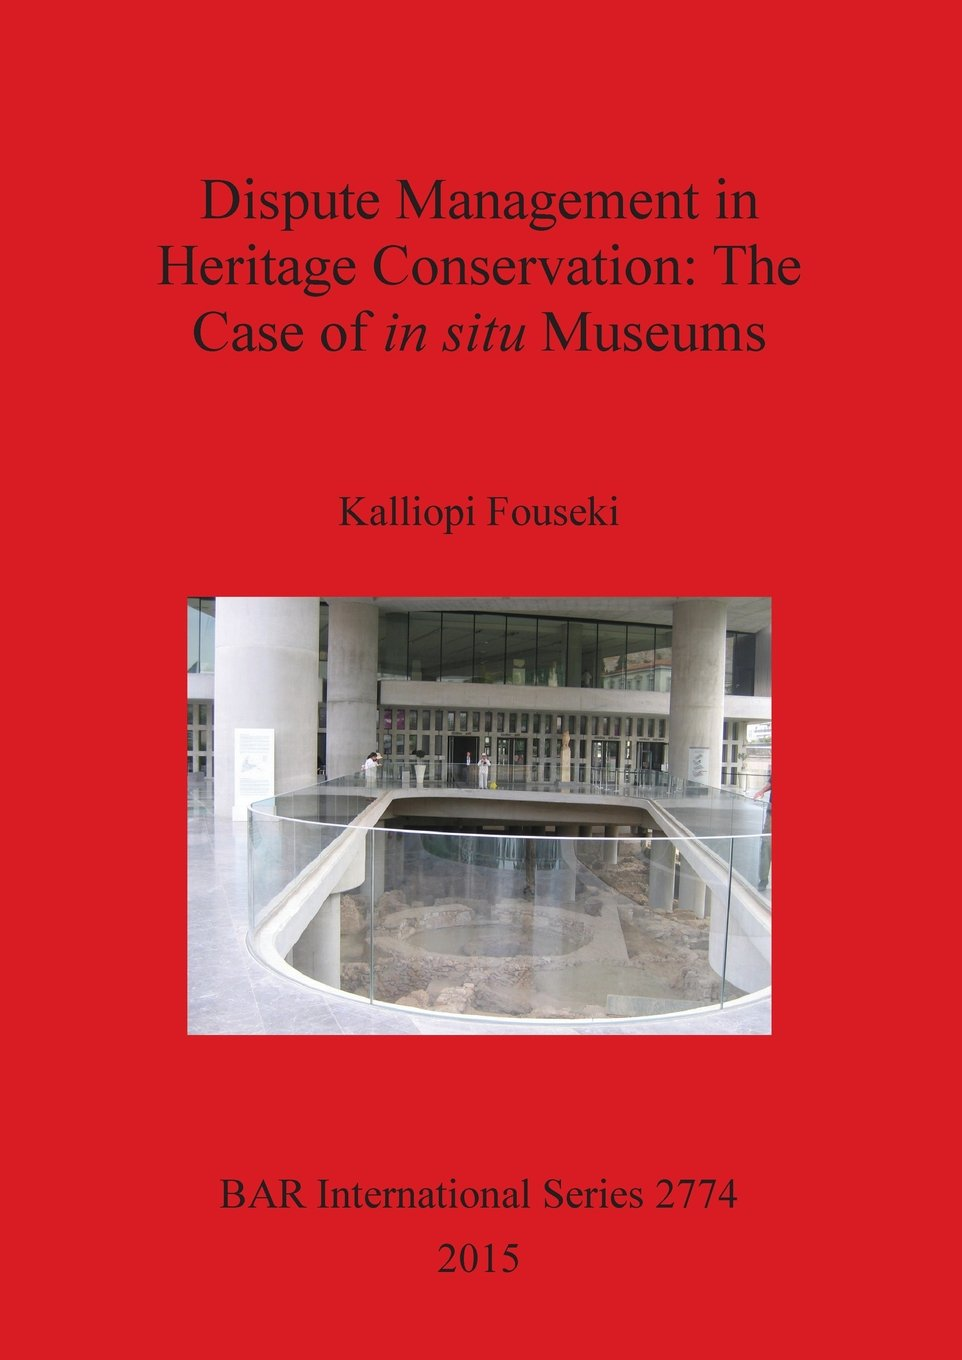 Dispute Management in Heritage Conservation: The Case of in situ Museums (BAR International Series) ebook